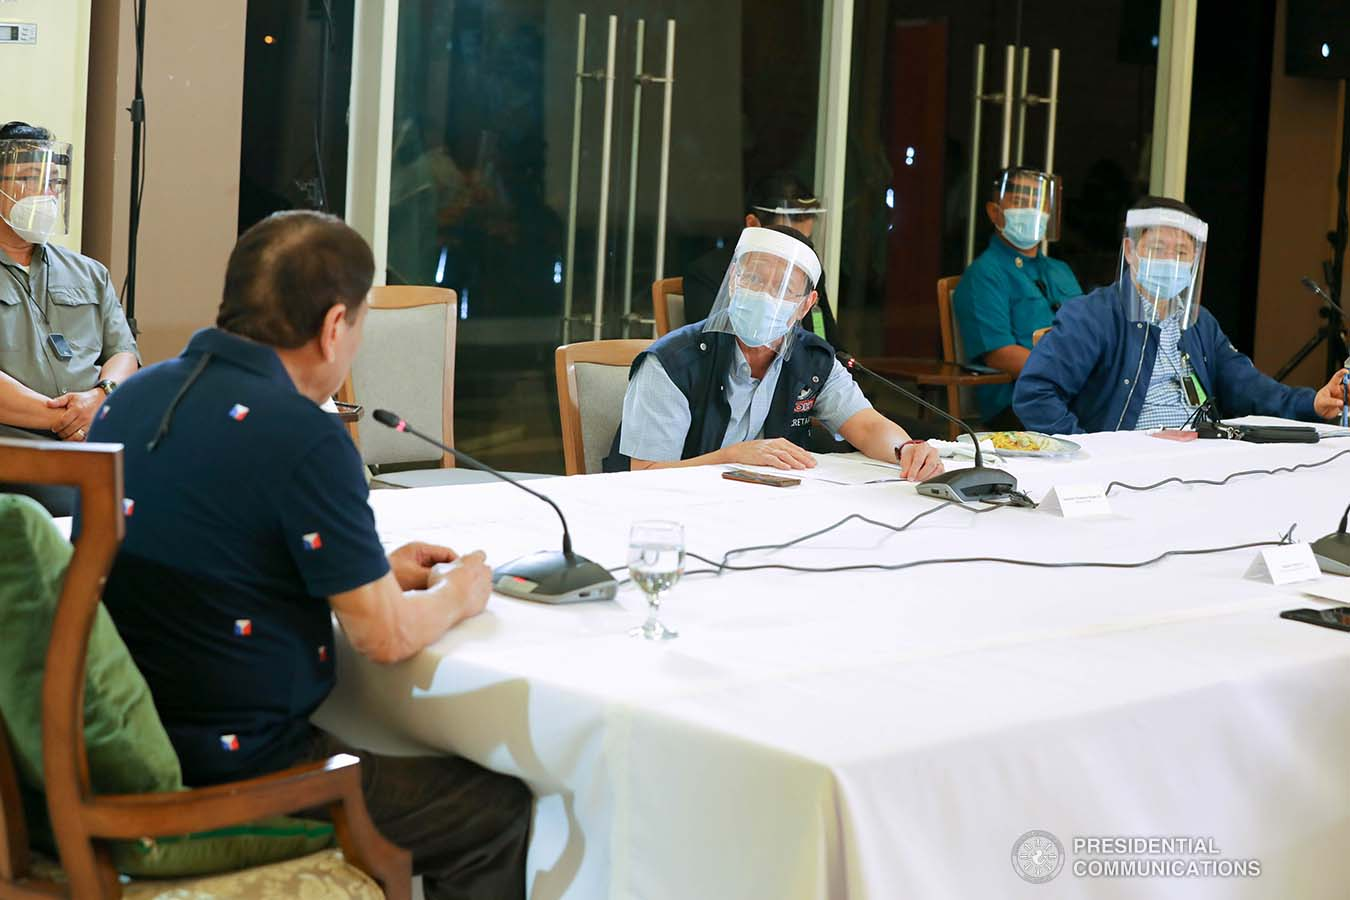 President Rodrigo Roa Duterte confers with Health Secretary Francisco Duque III during a meeting with members of the Inter-Agency Task Force on the Emerging Infectious Diseases (IATF-EID) at the Matina Enclaves in Davao City on June 4, 2020. ROBINSON NIÑAL JR./PRESIDENTIAL PHOTO